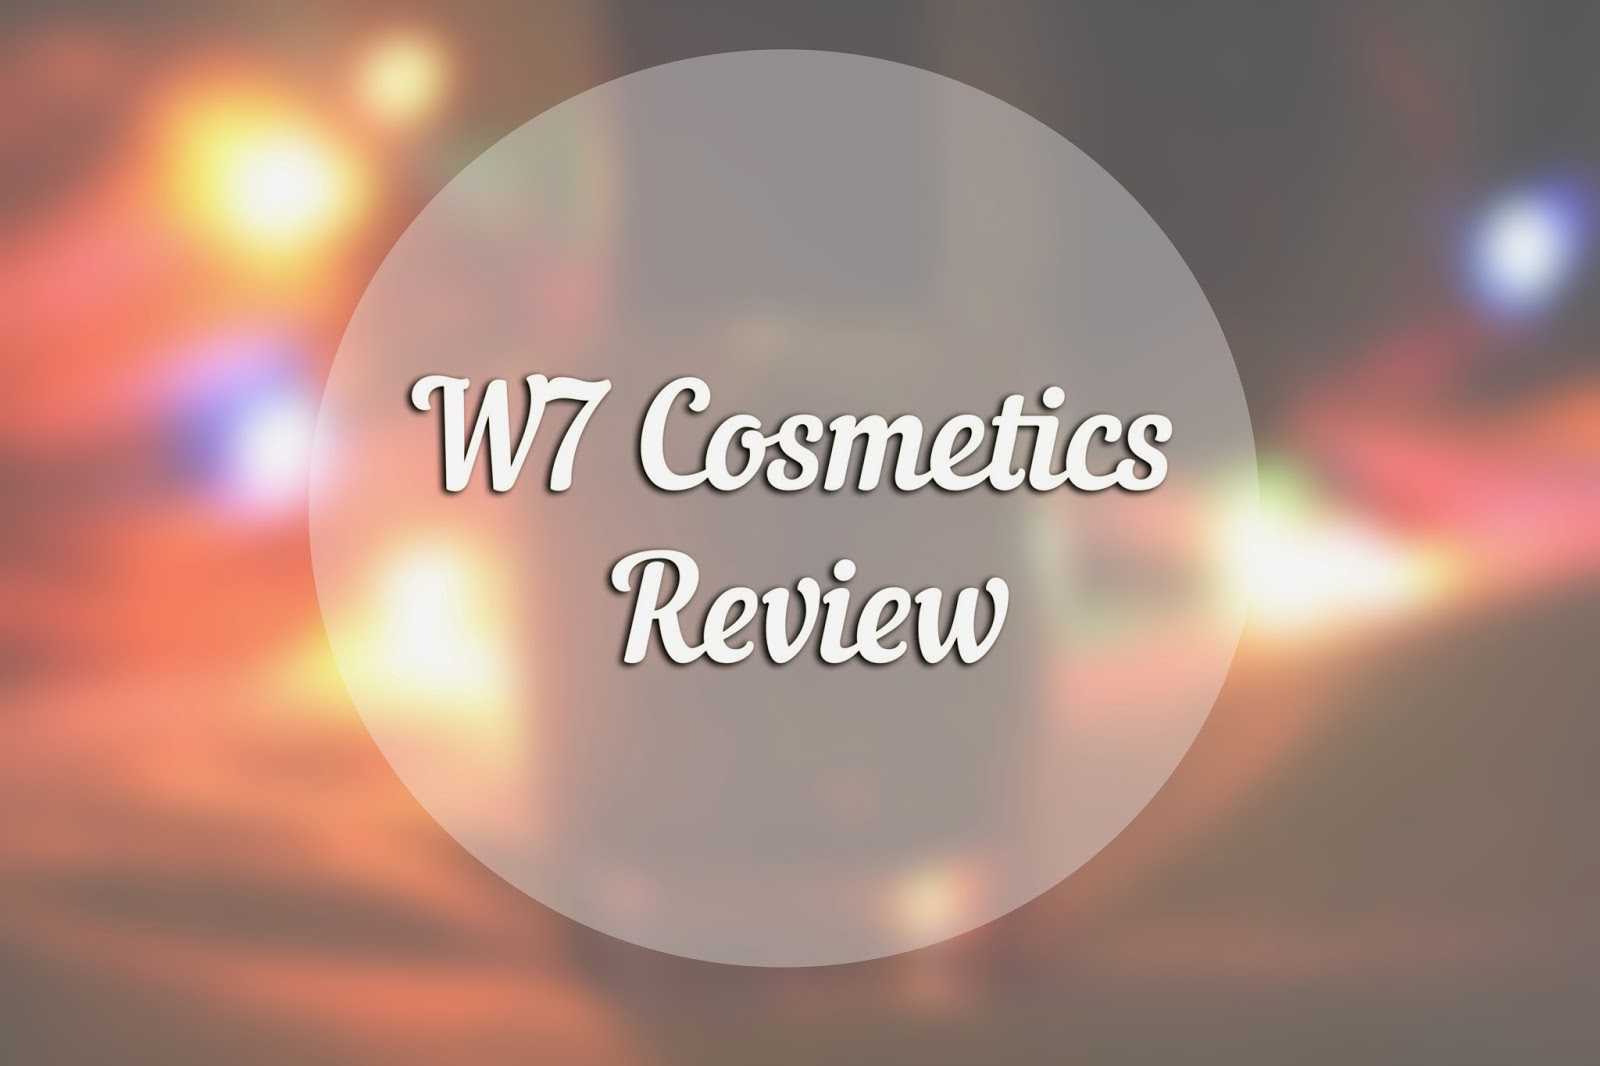 w7 Cosmetics Makeup Review